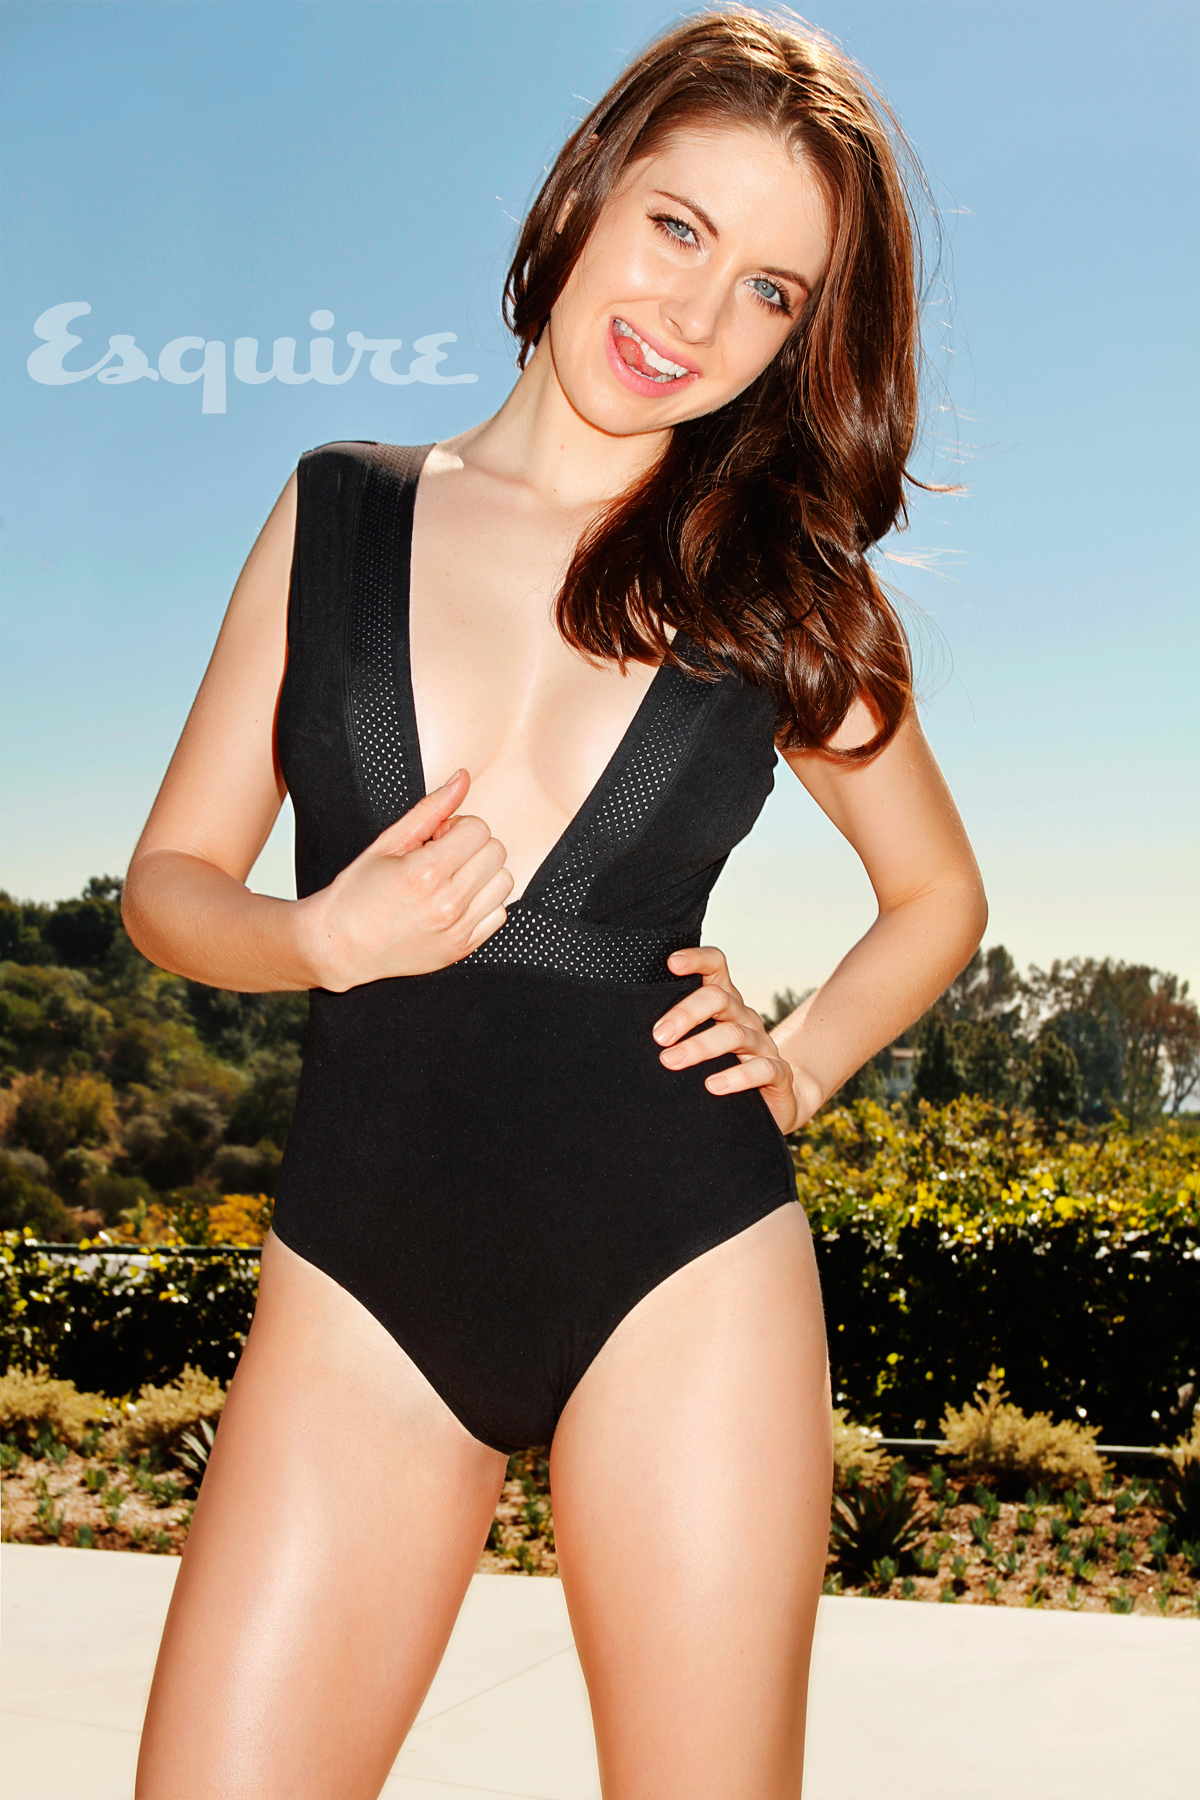 Unqualified dating advice alison brie esquire